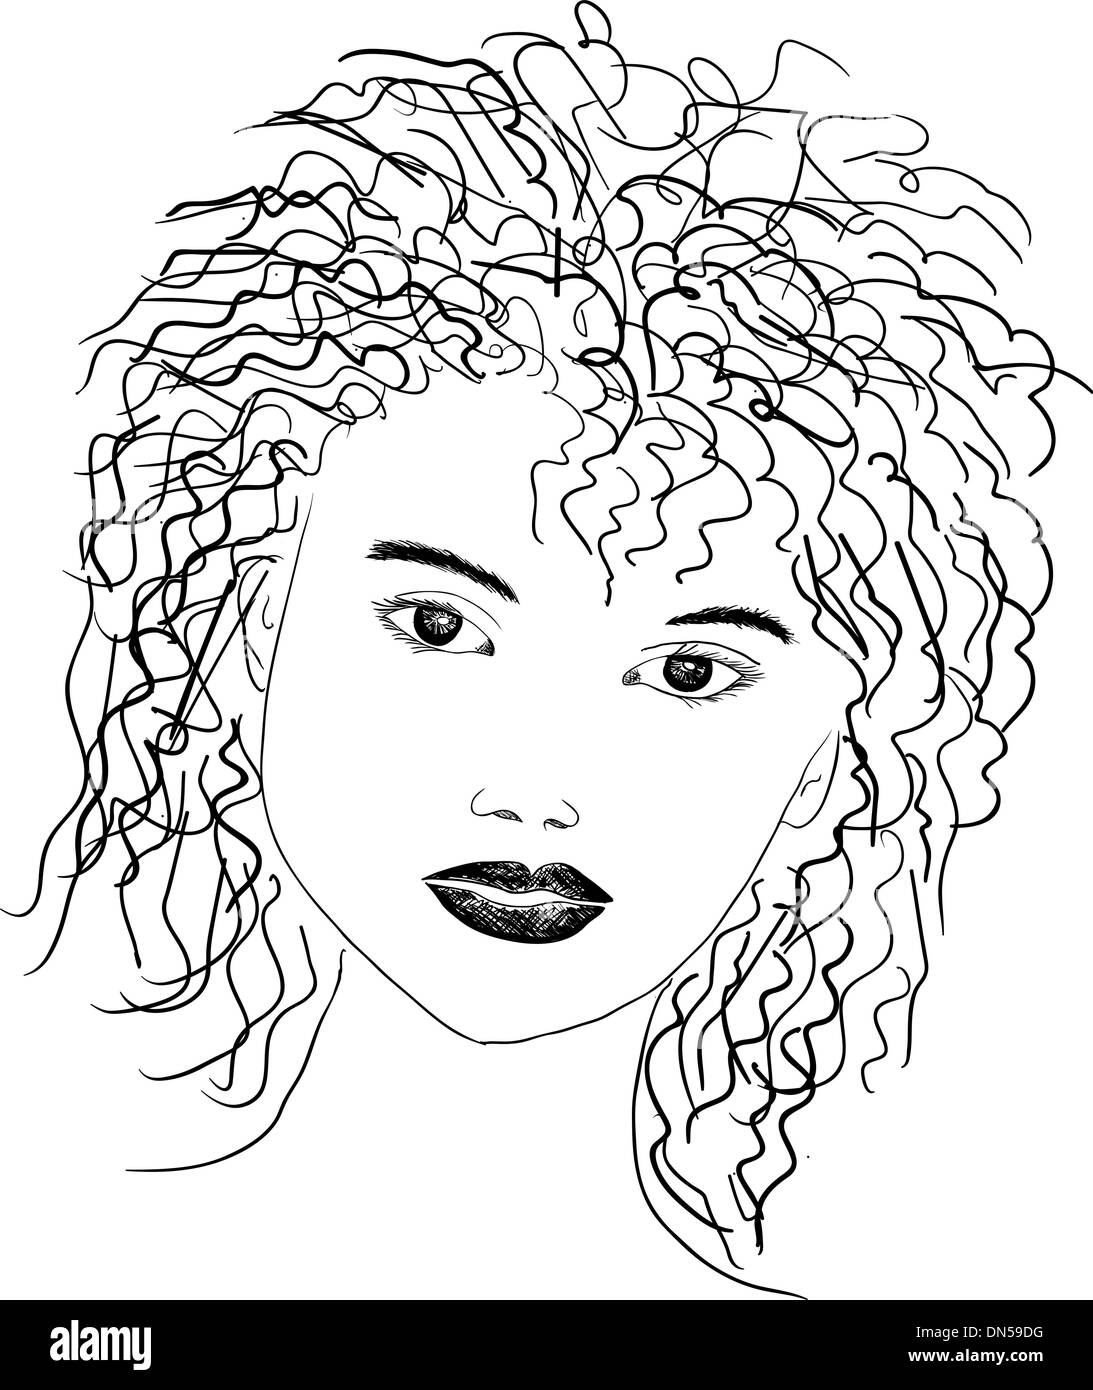 line drawing portrait - Stock Image